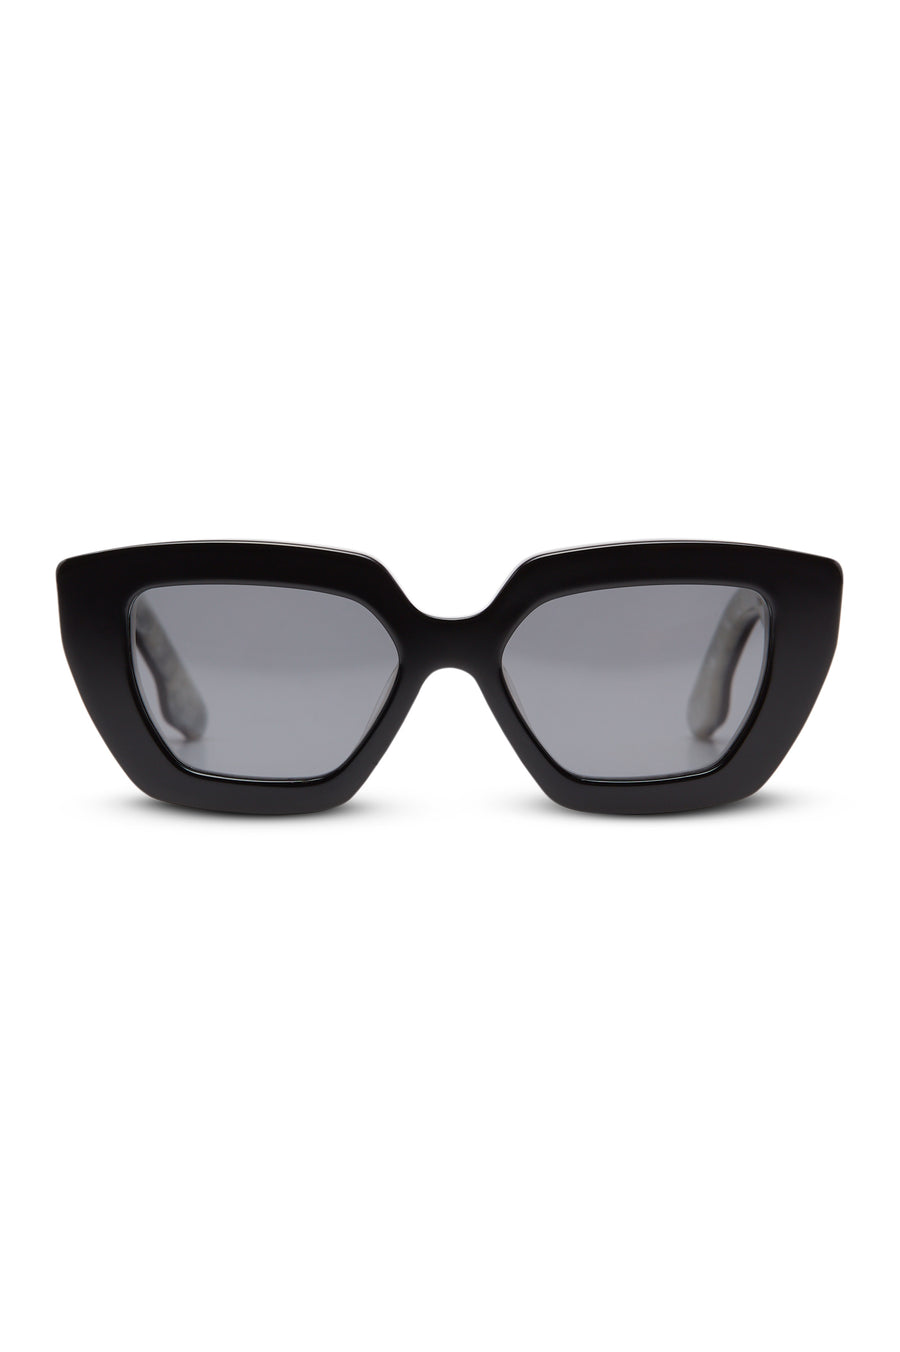 The pair of sophisticated sunglasses, reminiscent of the 60's, are softened by muted lenses.